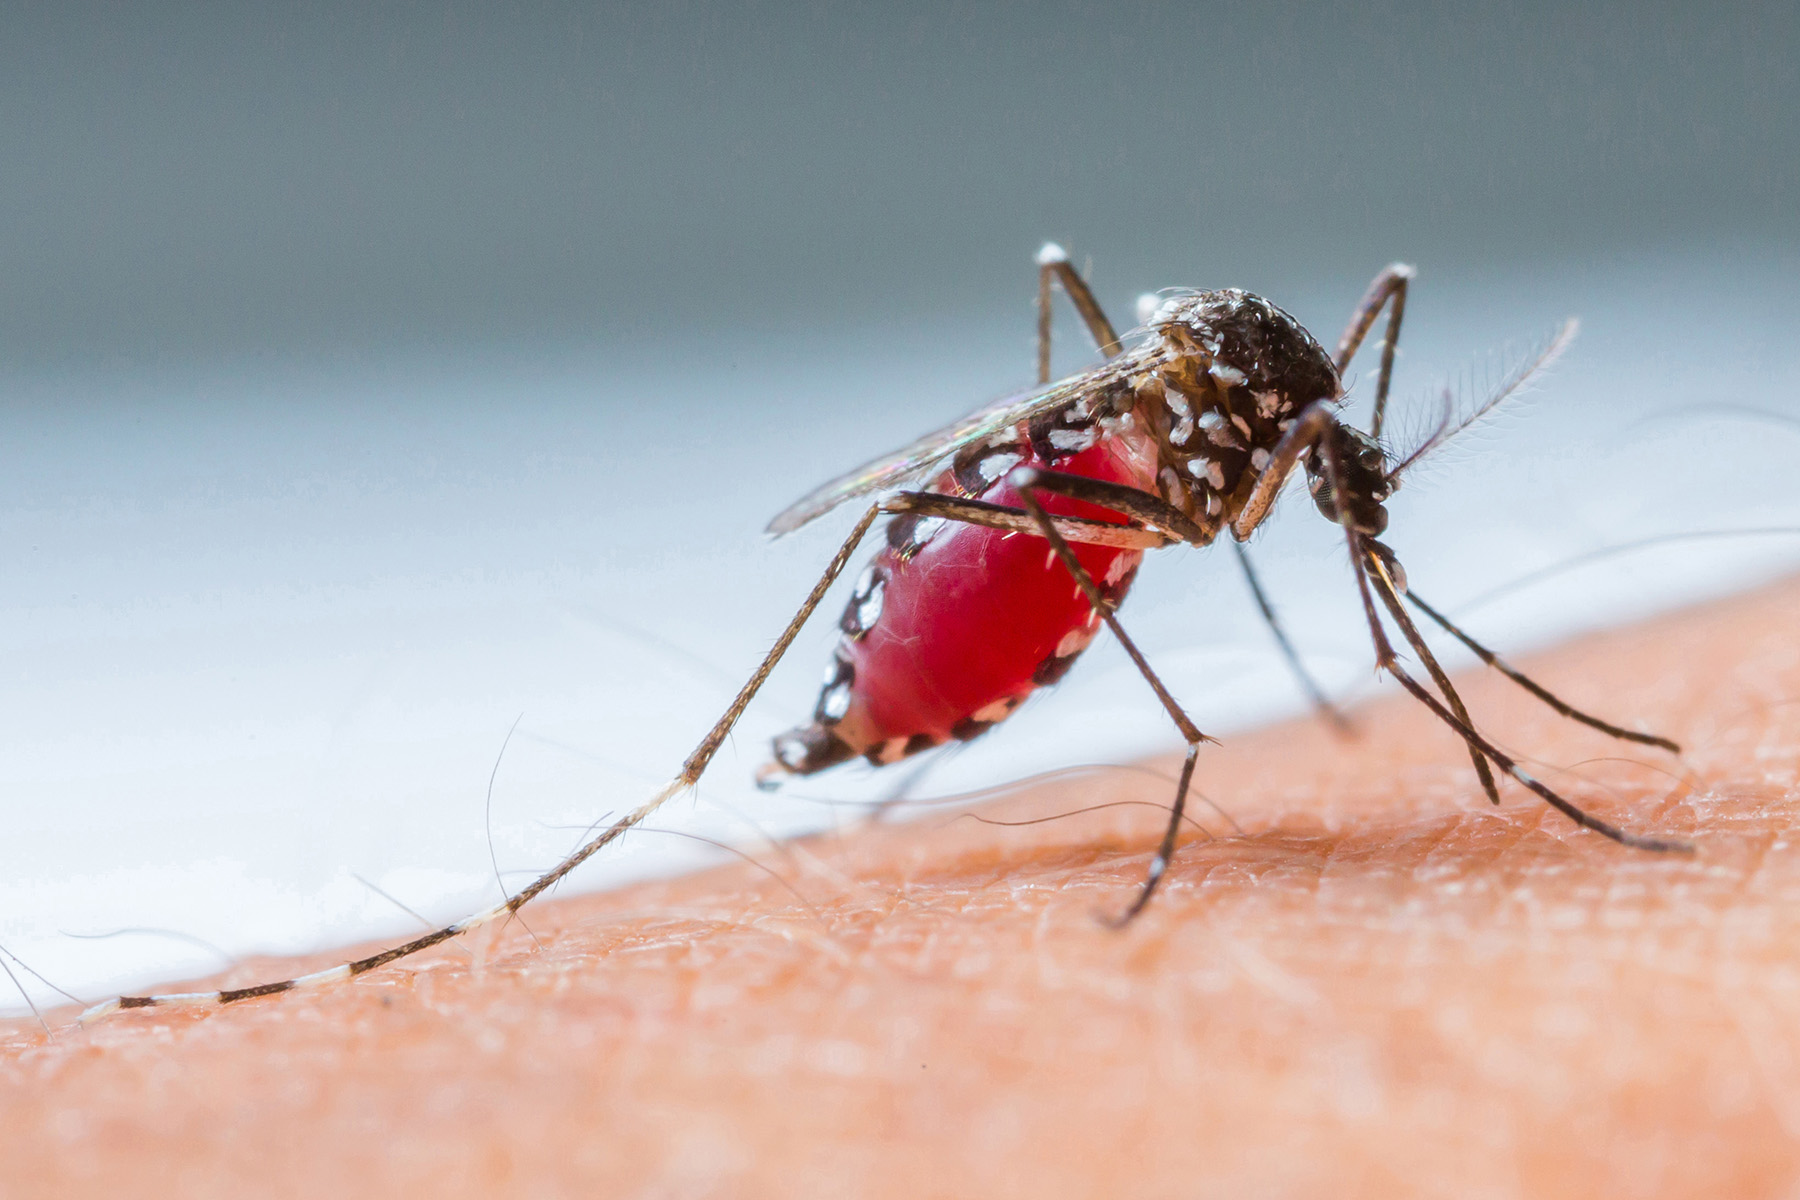 Malaria in the time of COVID-19: the deadly poverty trap